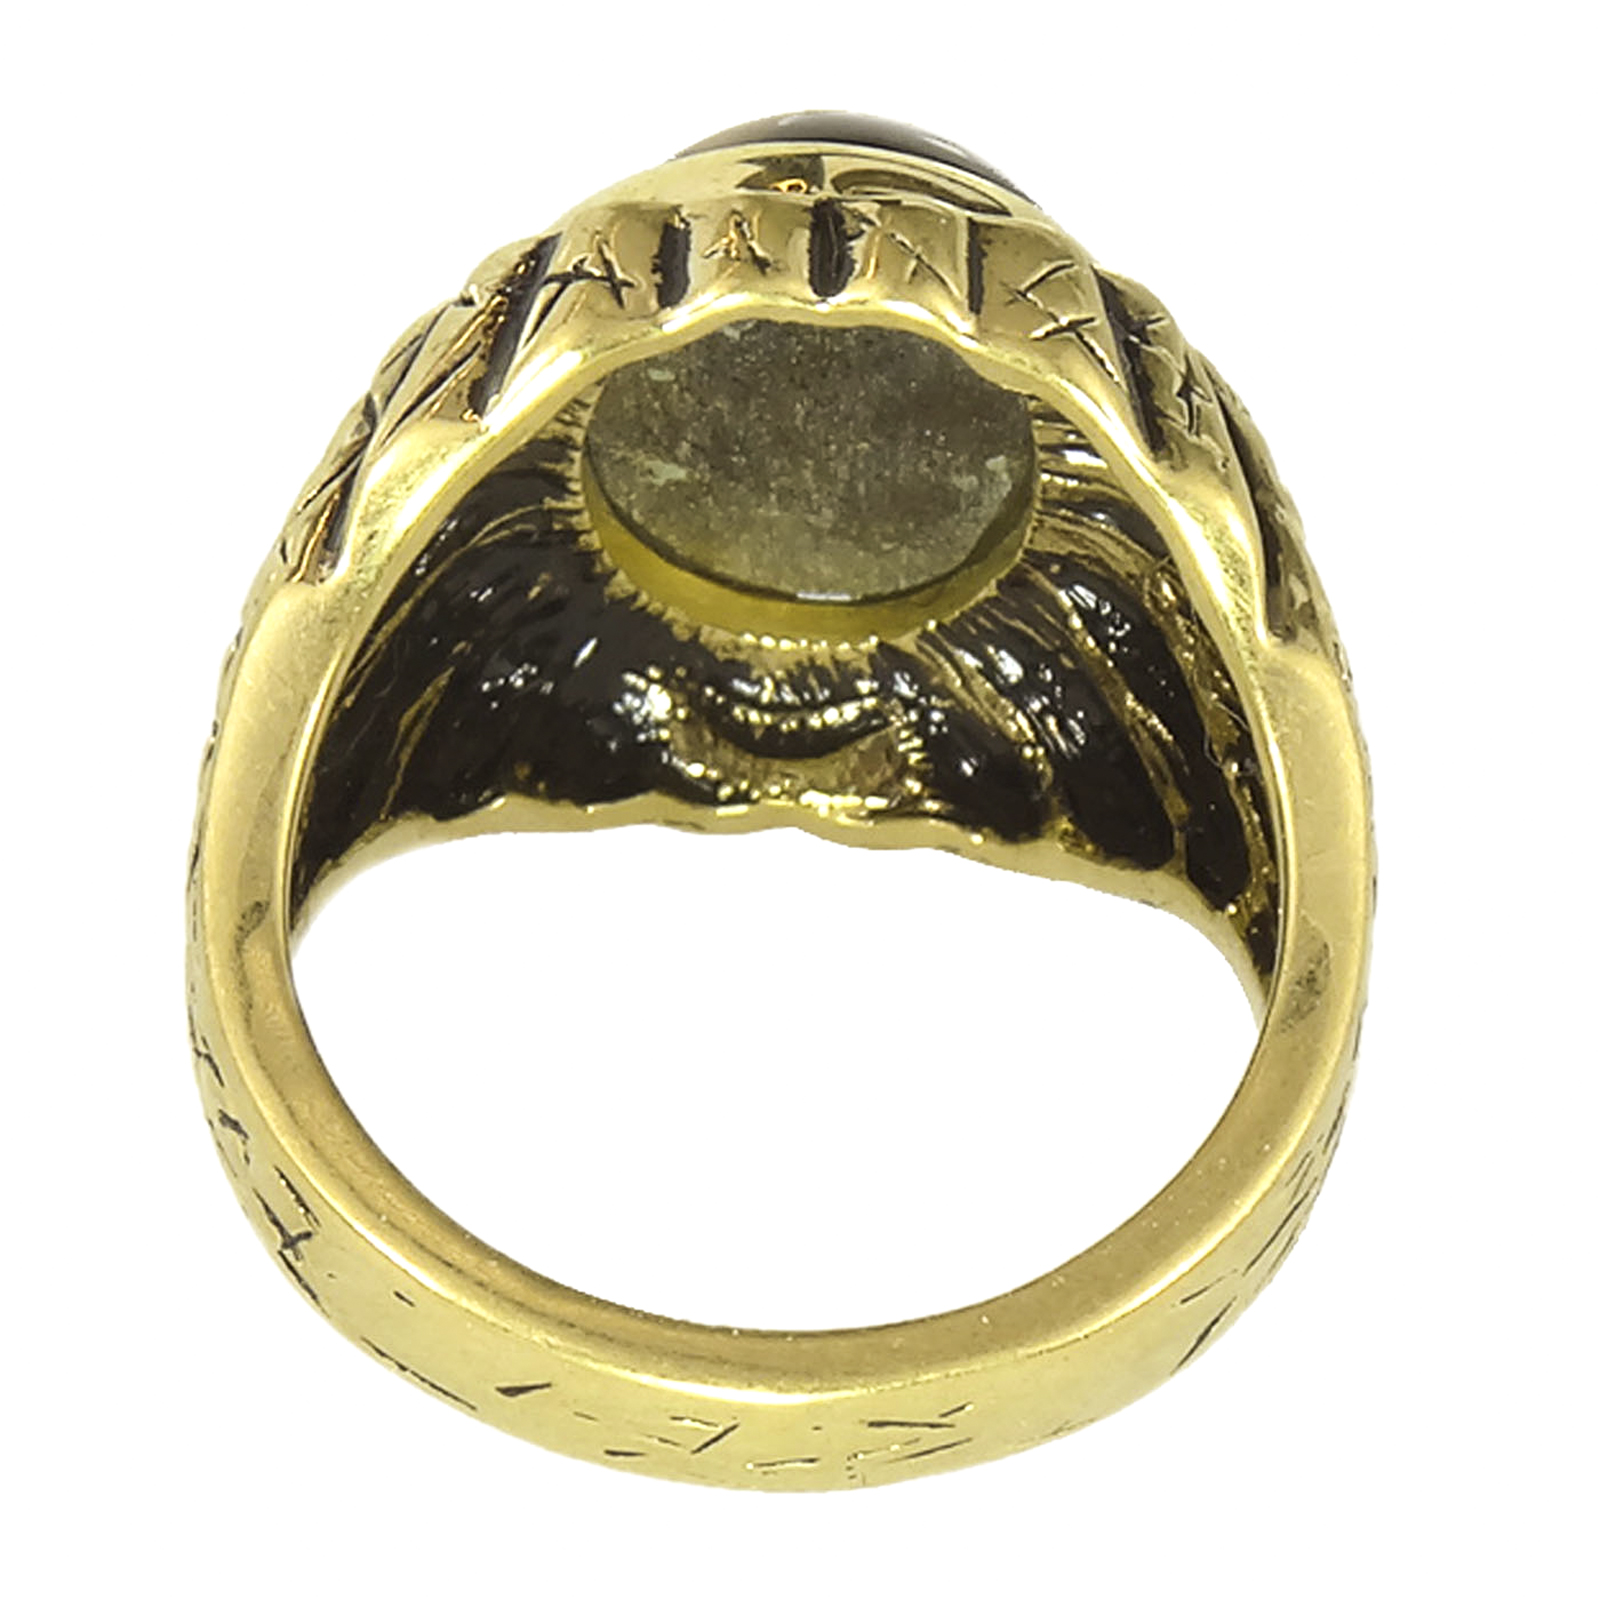 man size carved l rings free white eye gold shipping soldier engraved tigers ring vintage